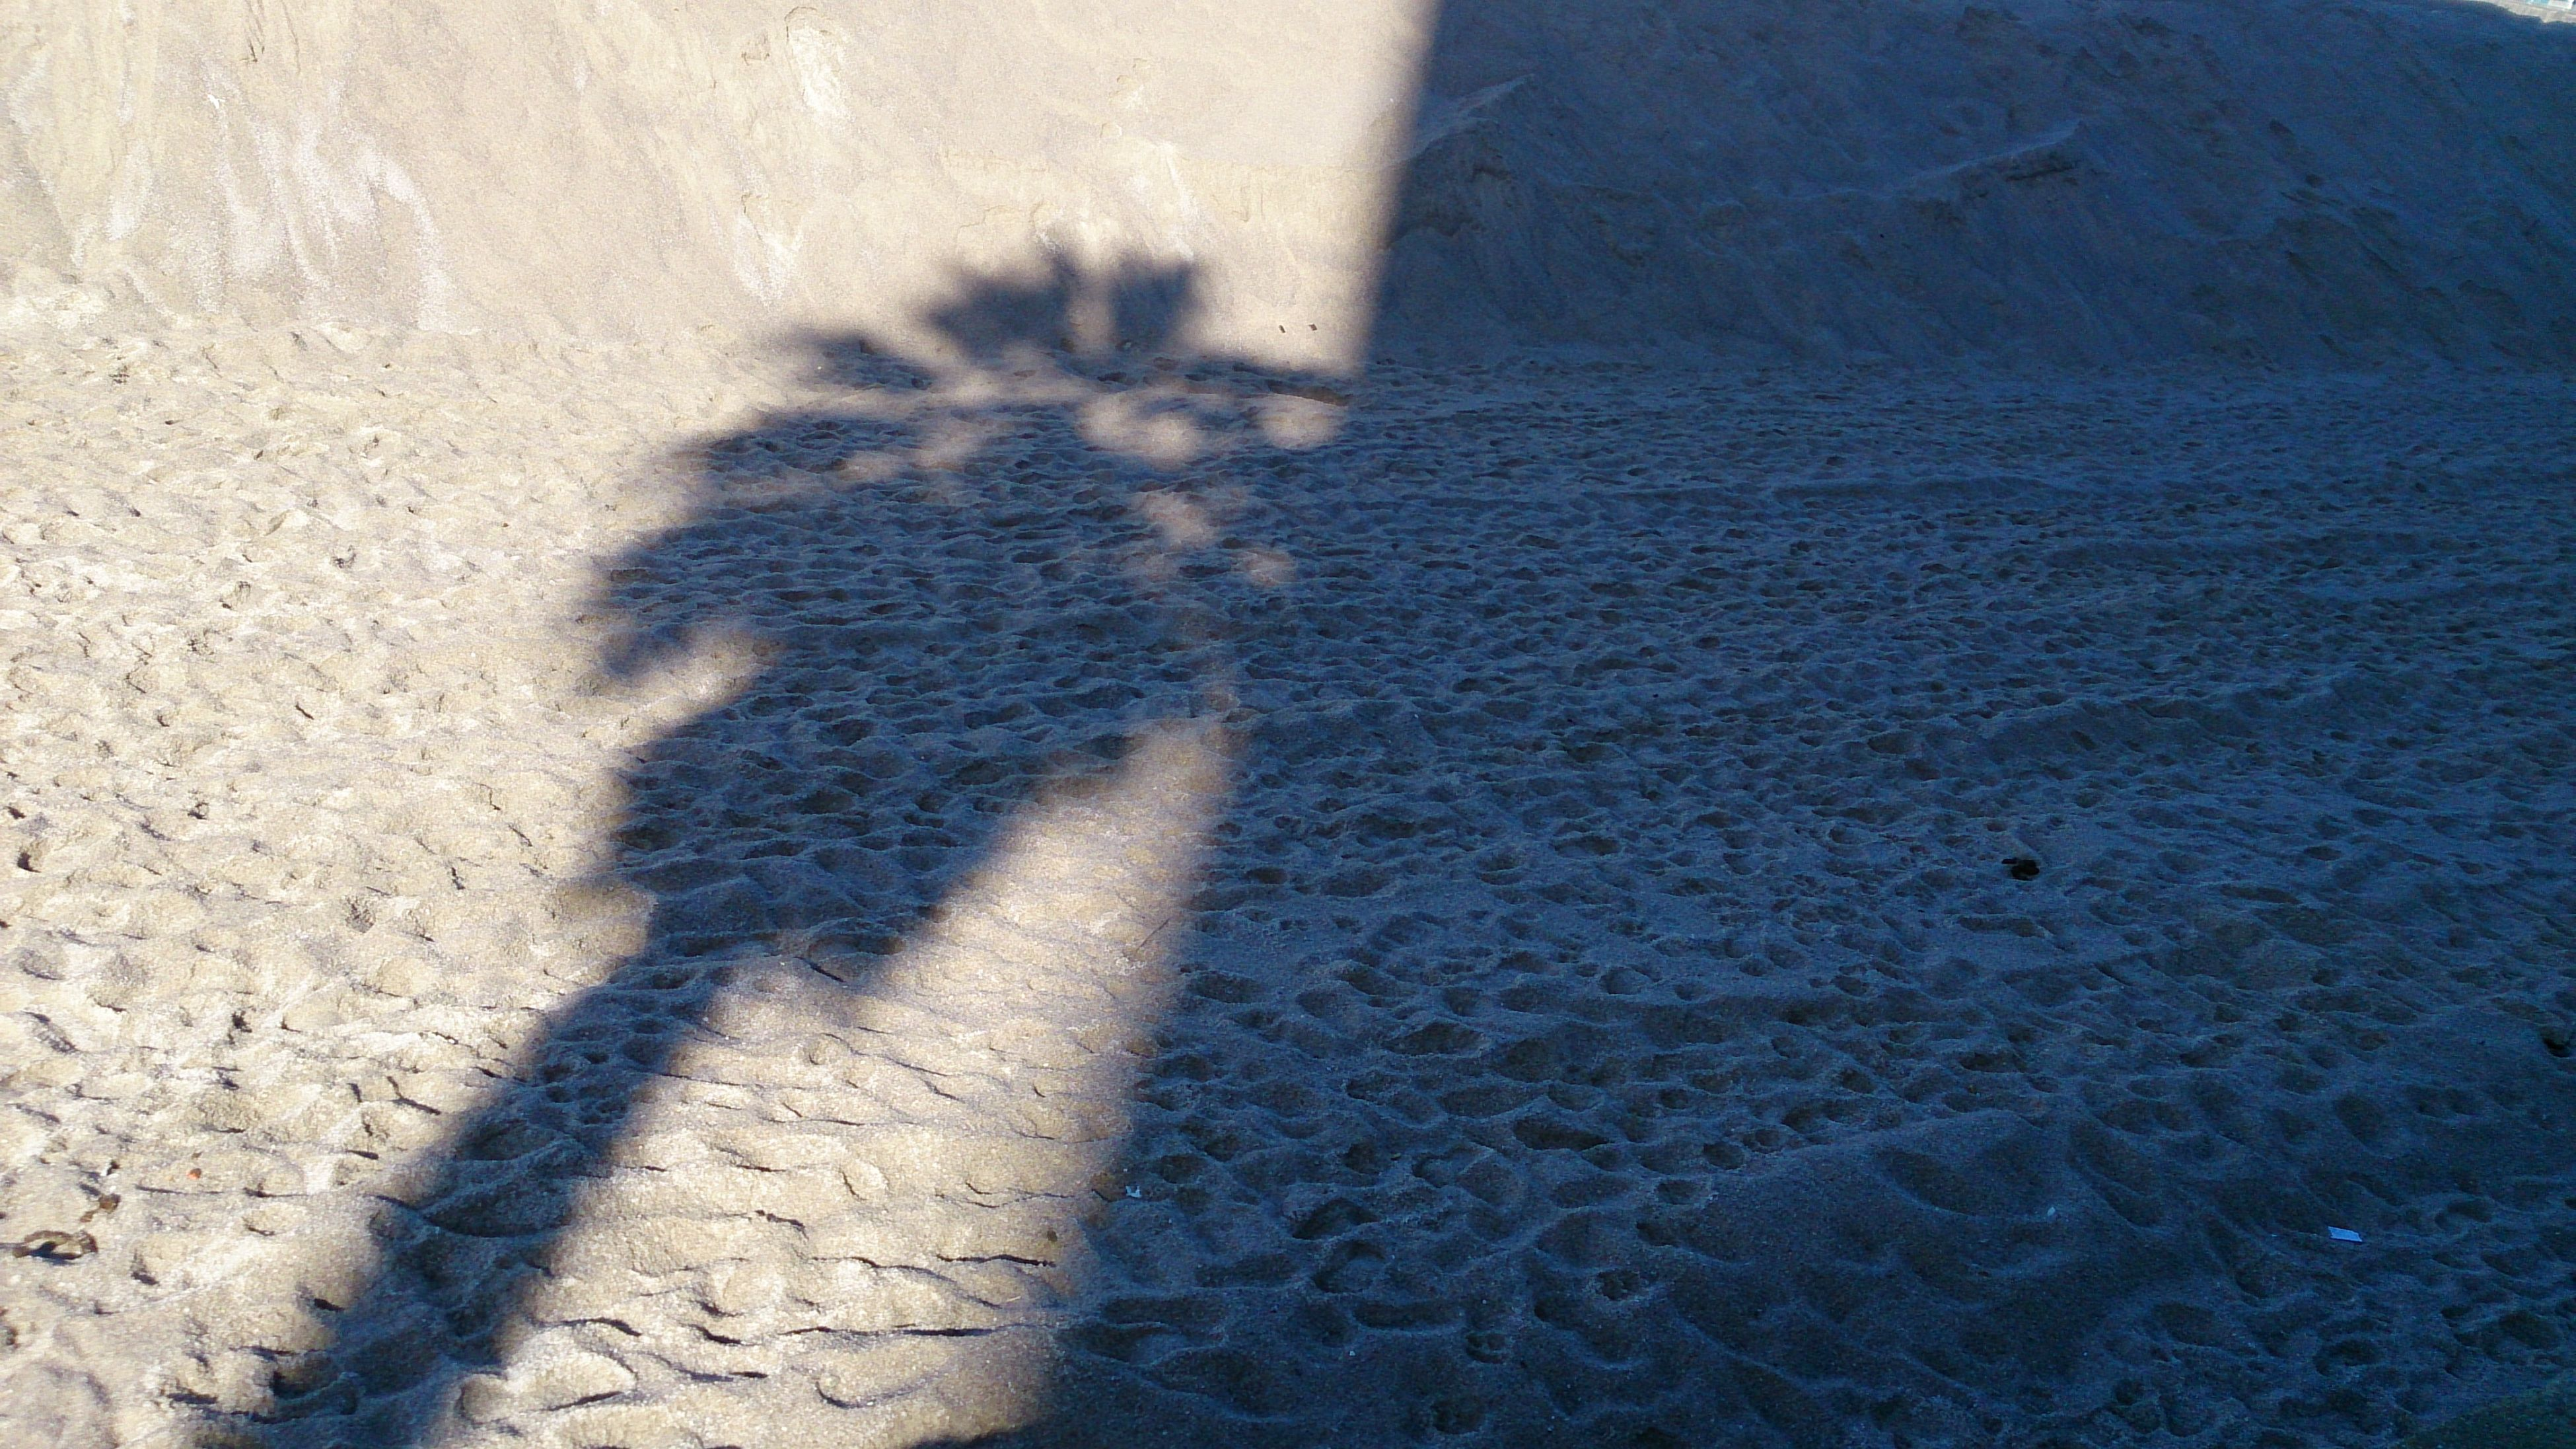 sand, shadow, beach, sunlight, focus on shadow, high angle view, shore, lifestyles, leisure activity, unrecognizable person, outdoors, day, footprint, nature, walking, standing, men, street